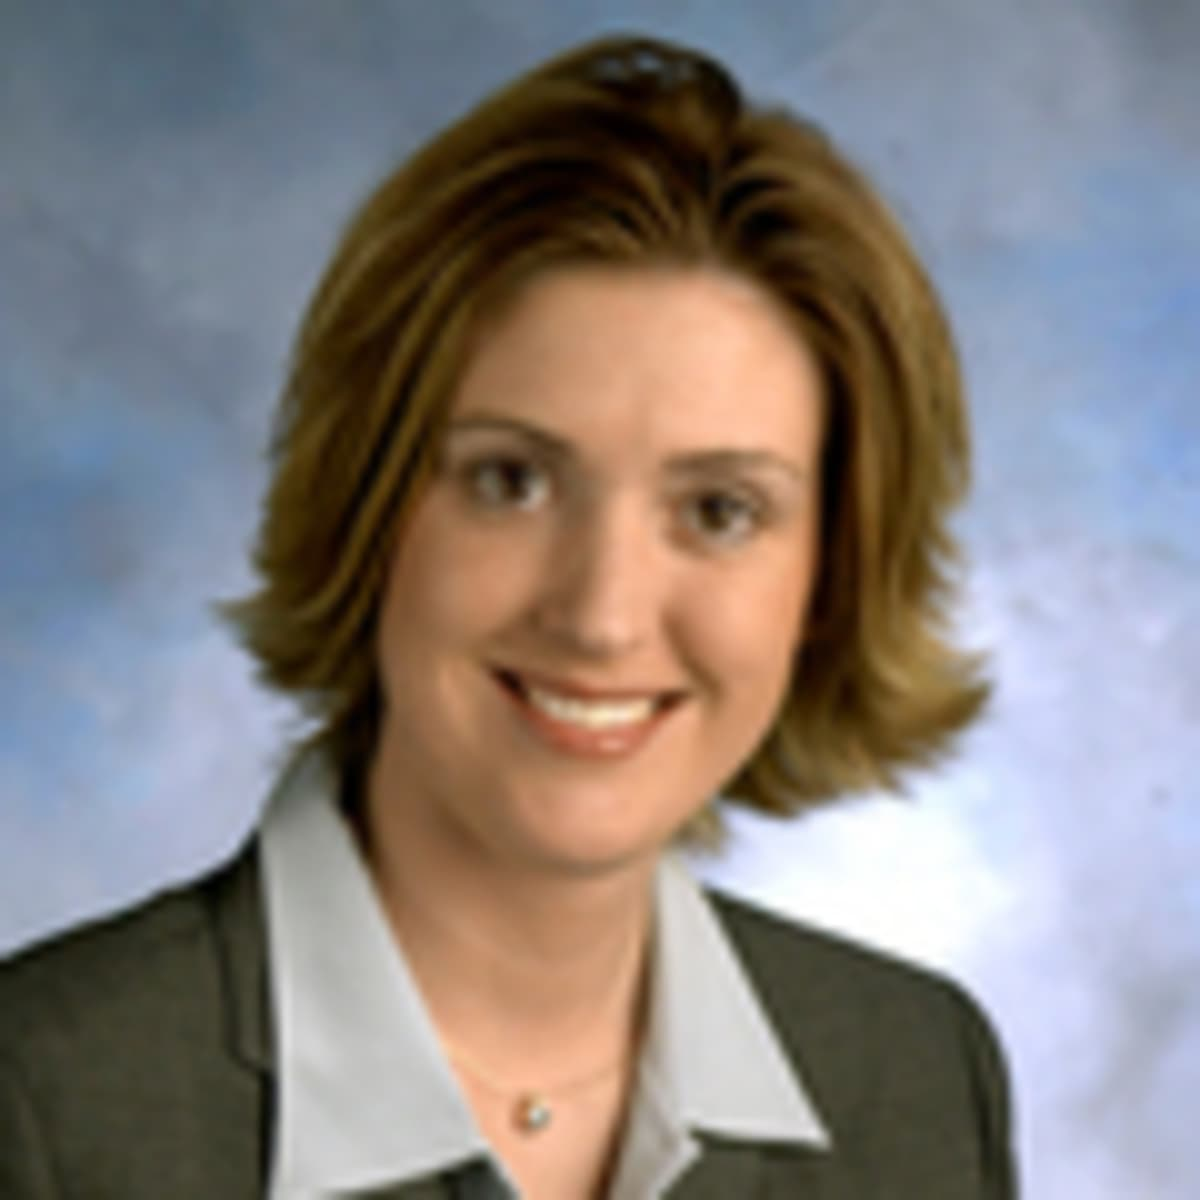 Video Dr Amy Nelson Md Sioux Falls Sd Family Doctor